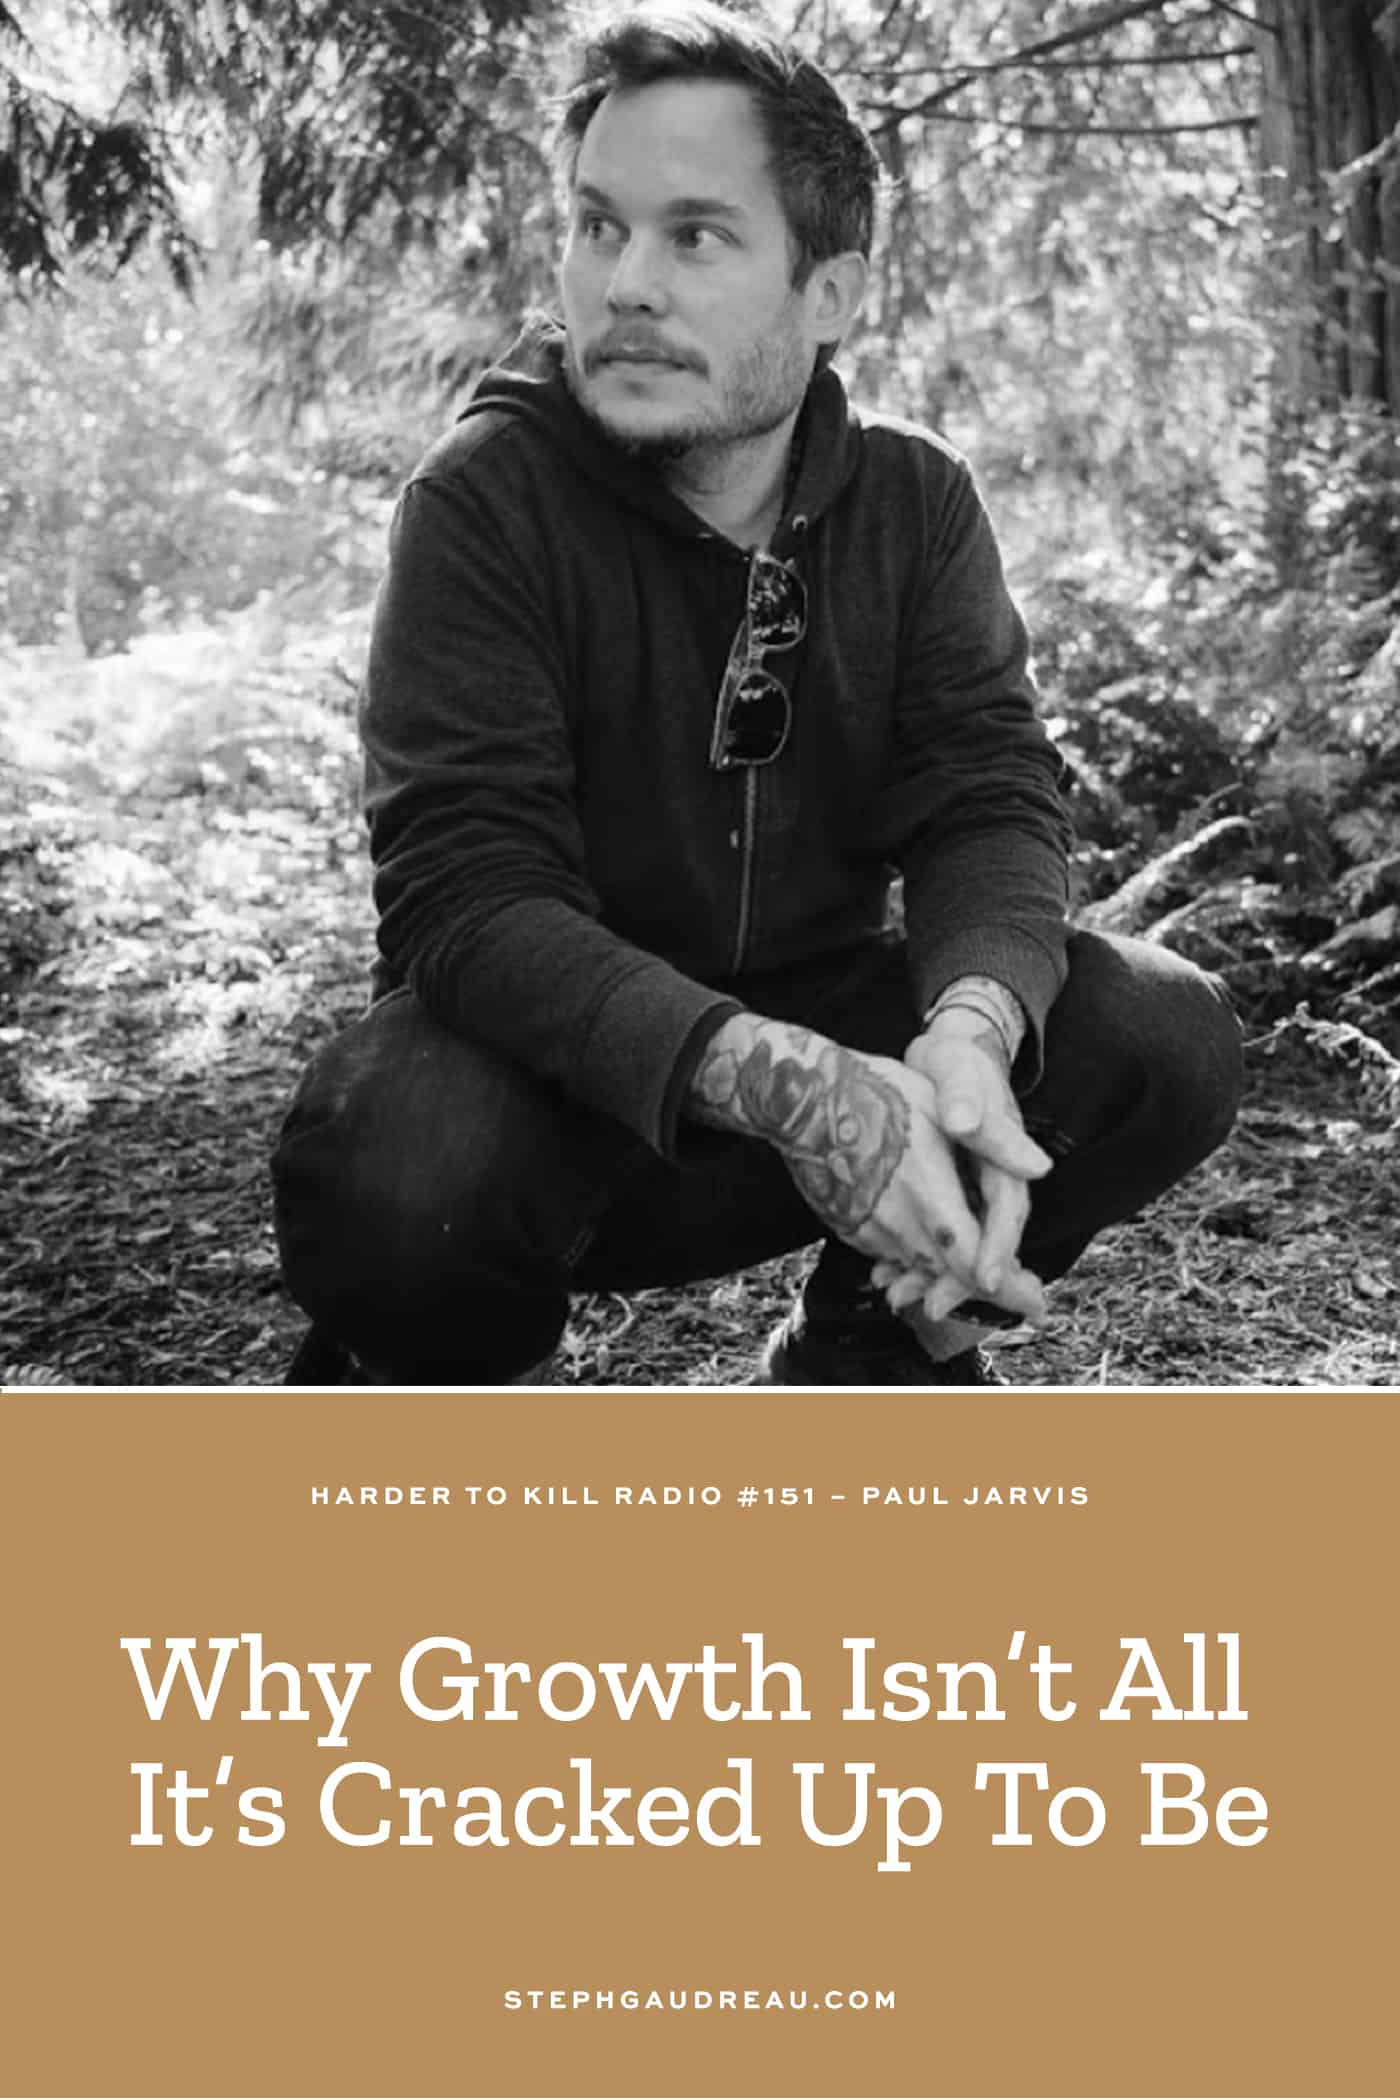 Harder To Kill Radio 151: Why Growth Isn't All It's Cracked Up To Be w/ Paul Jarvis